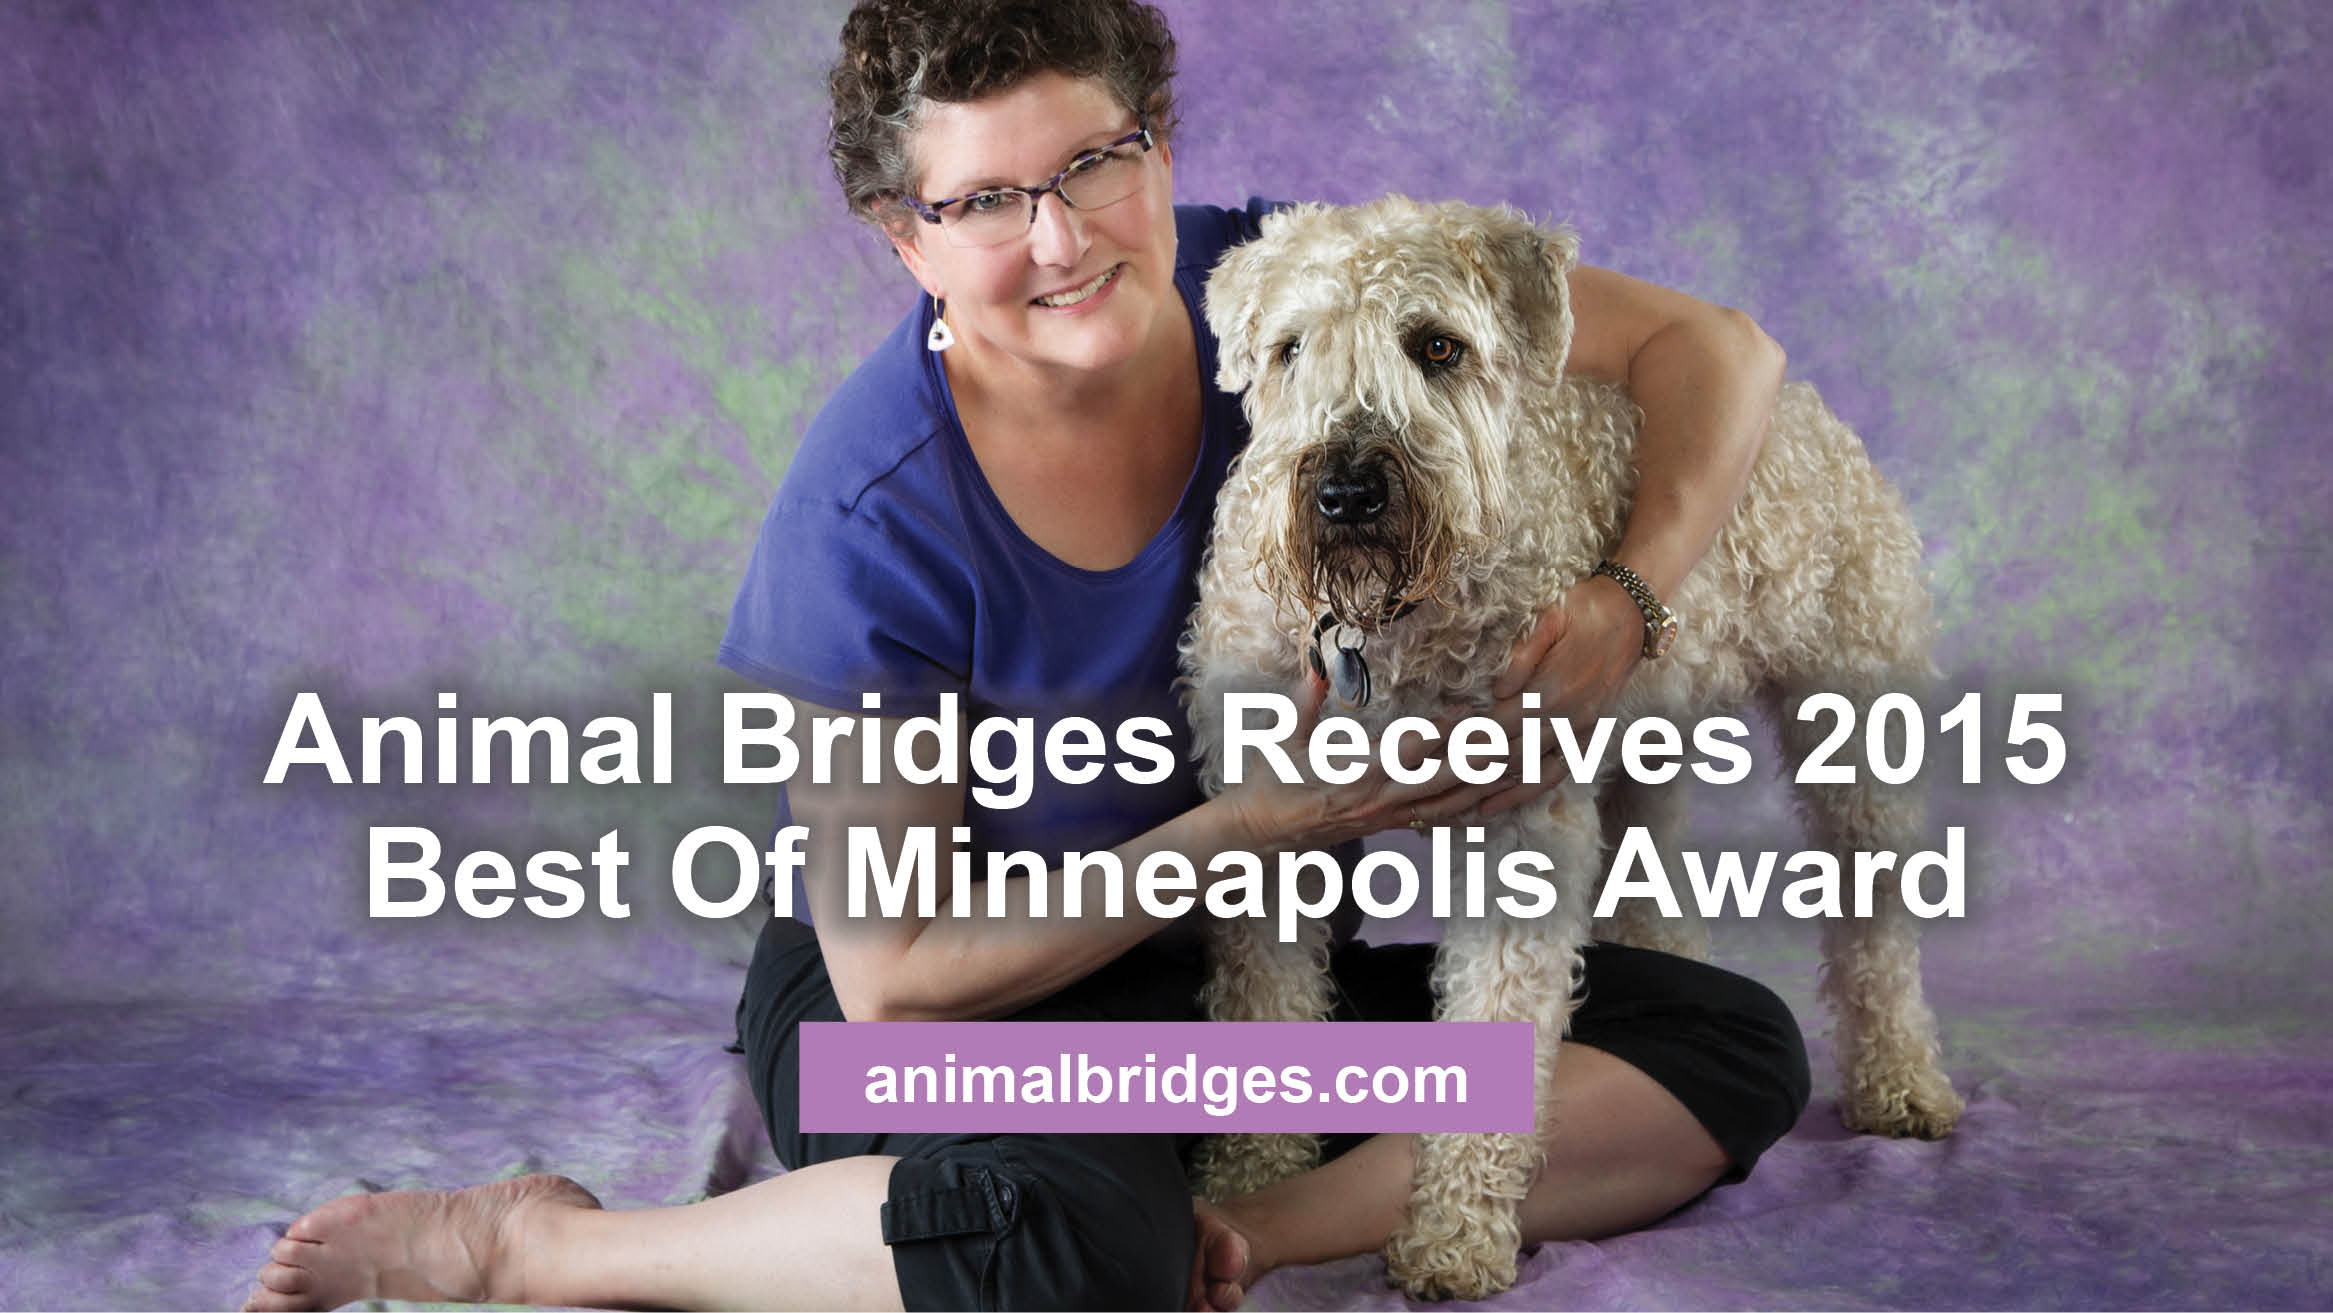 Animal Bridges Receives 2015 Best Of Minneapolis Award